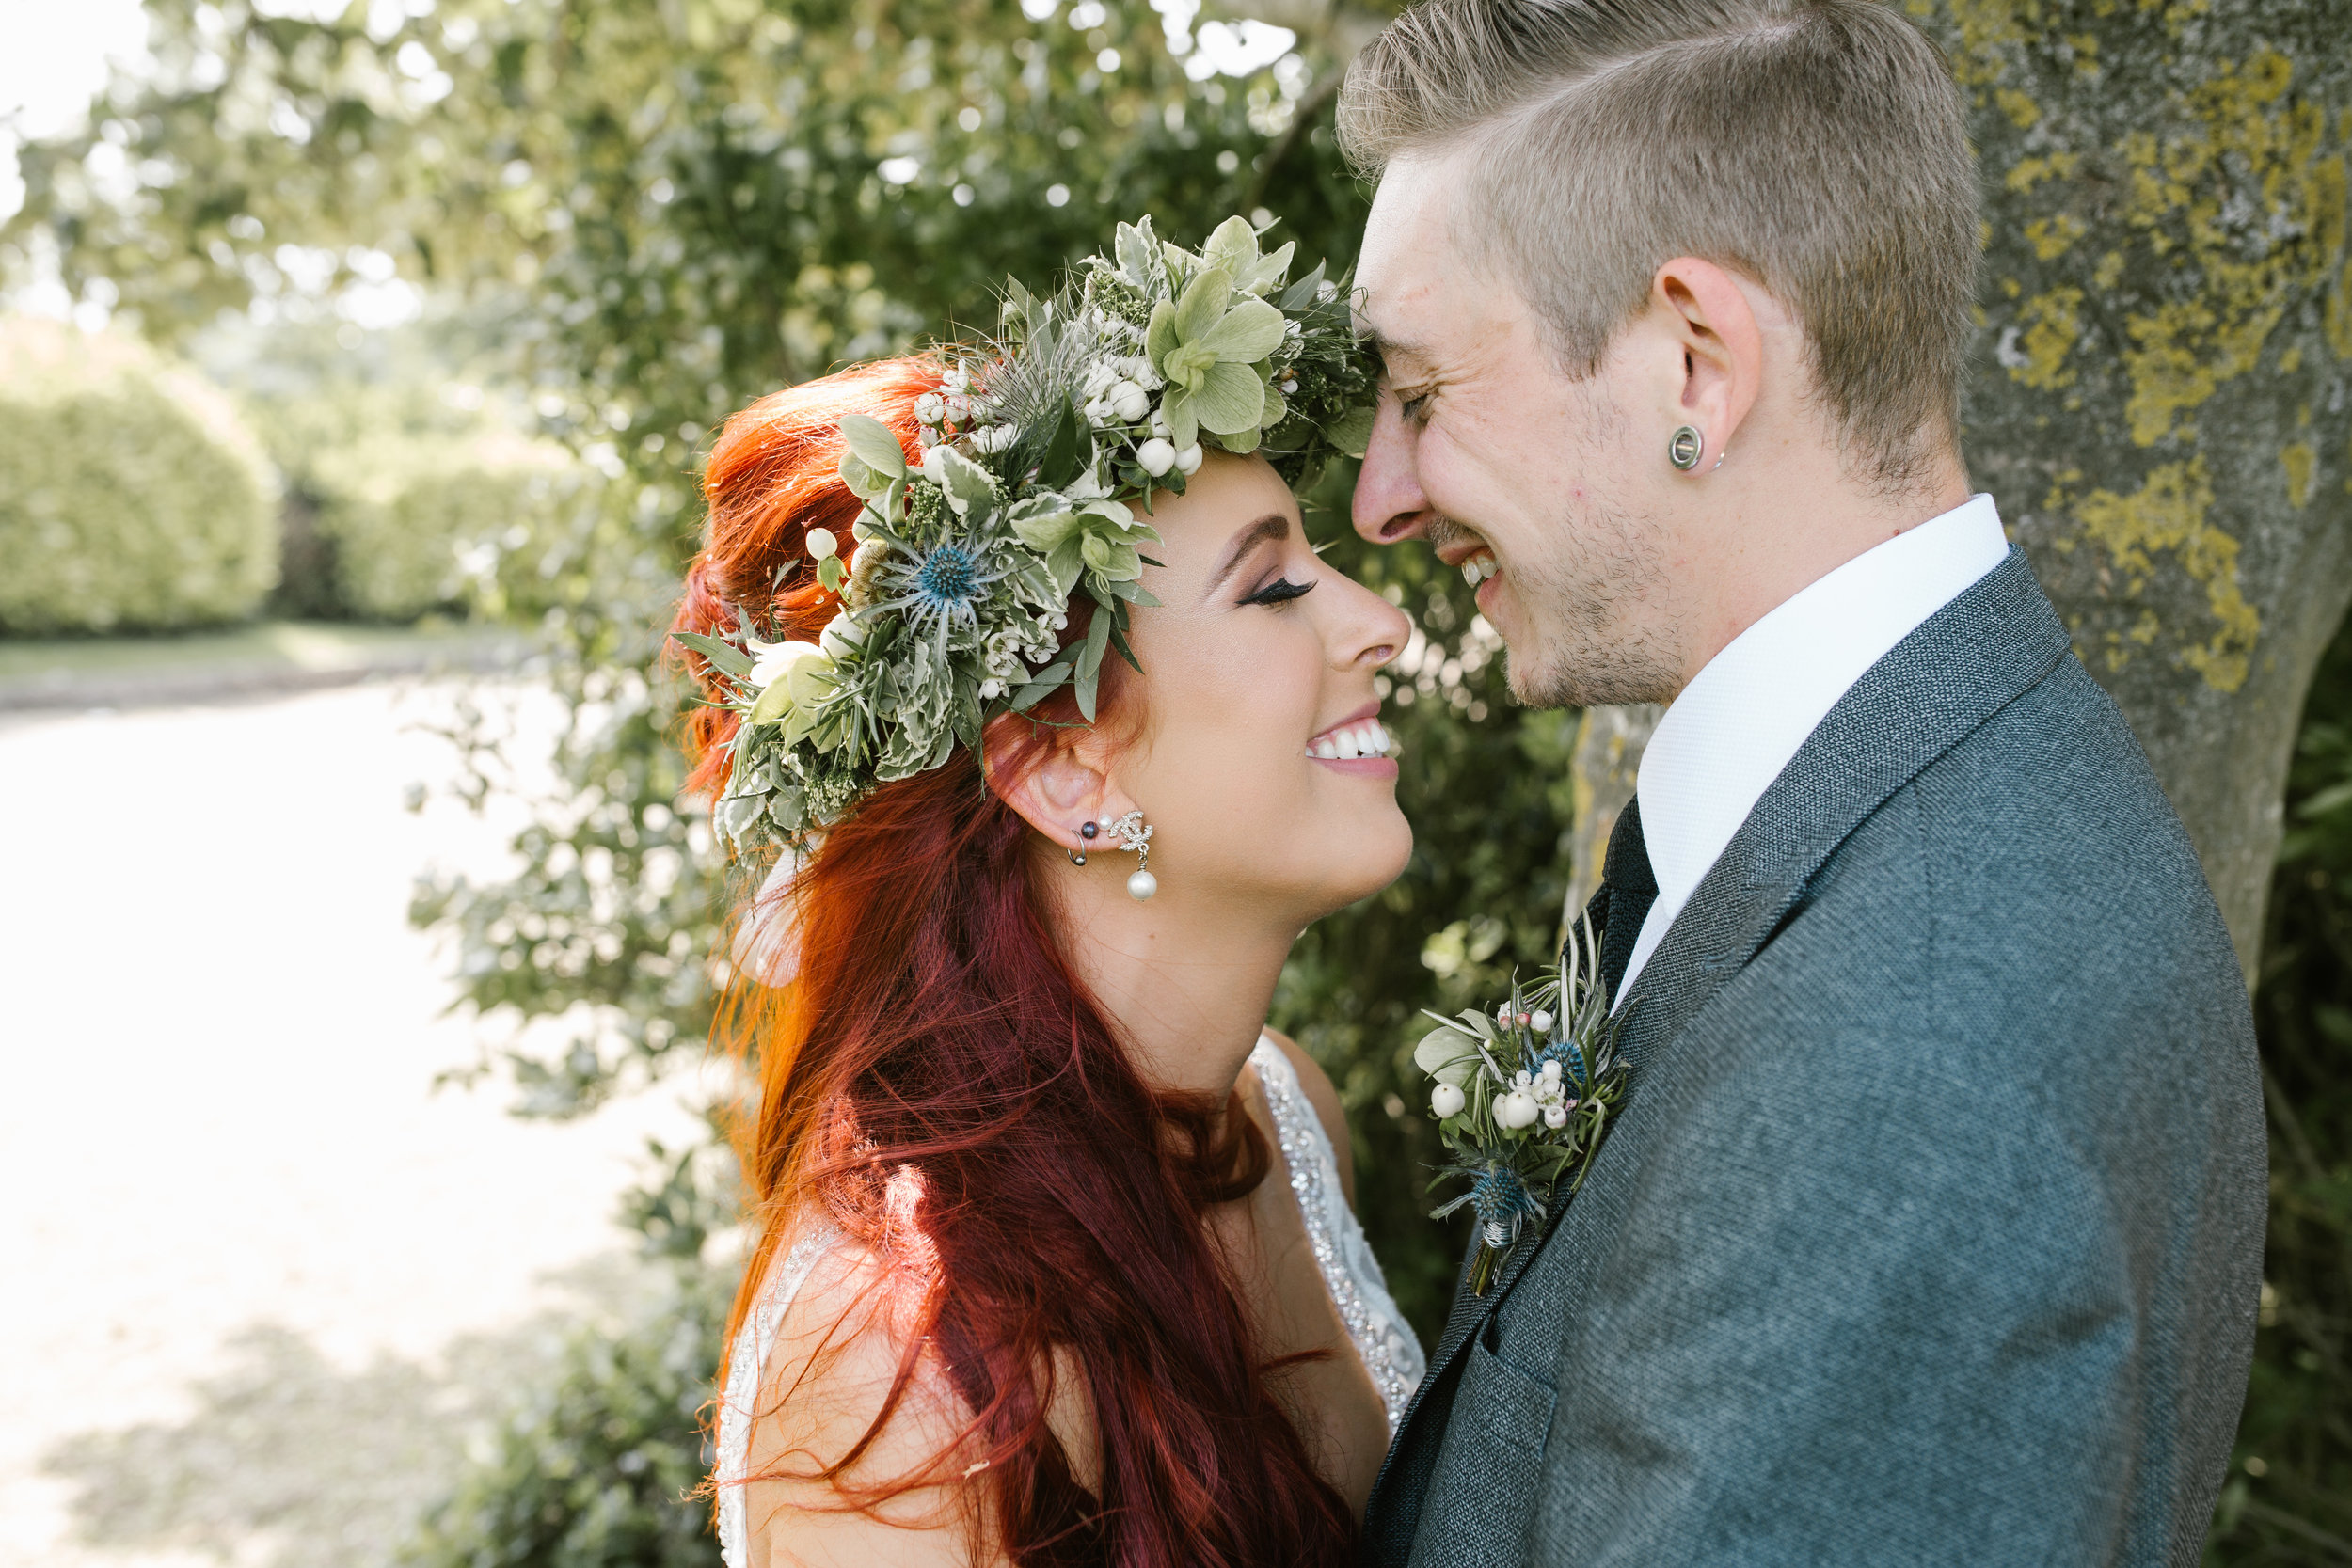 amazing flower crown being worn by a red headed bride, laughing with her new husband in the summer sun- relaxed wedding photography